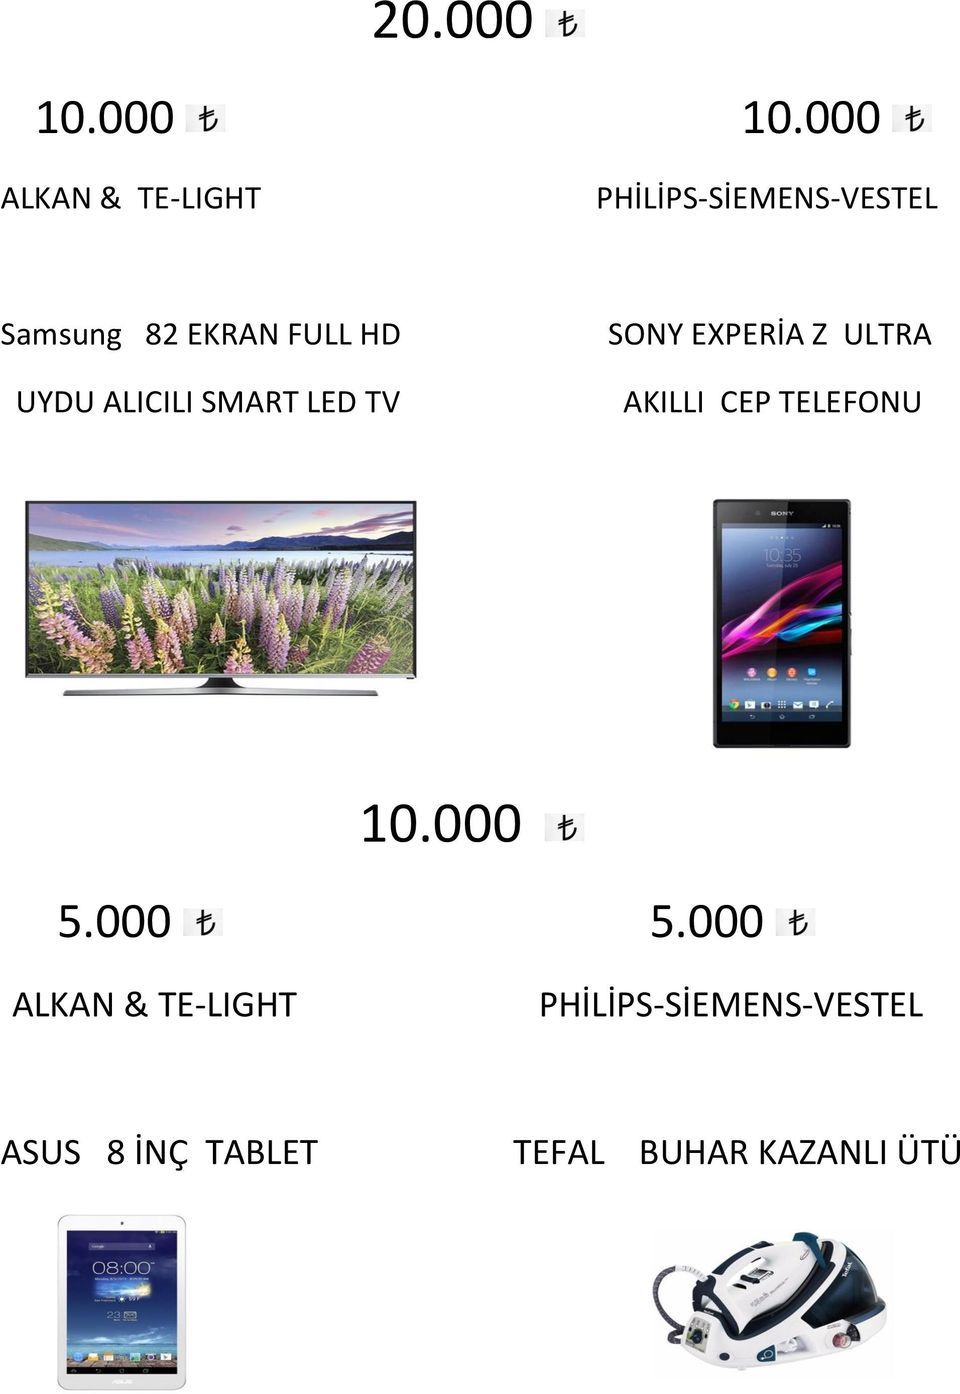 000 ALKAN & TE-LIGHT Samsung 82 EKRAN FULL HD UYDU